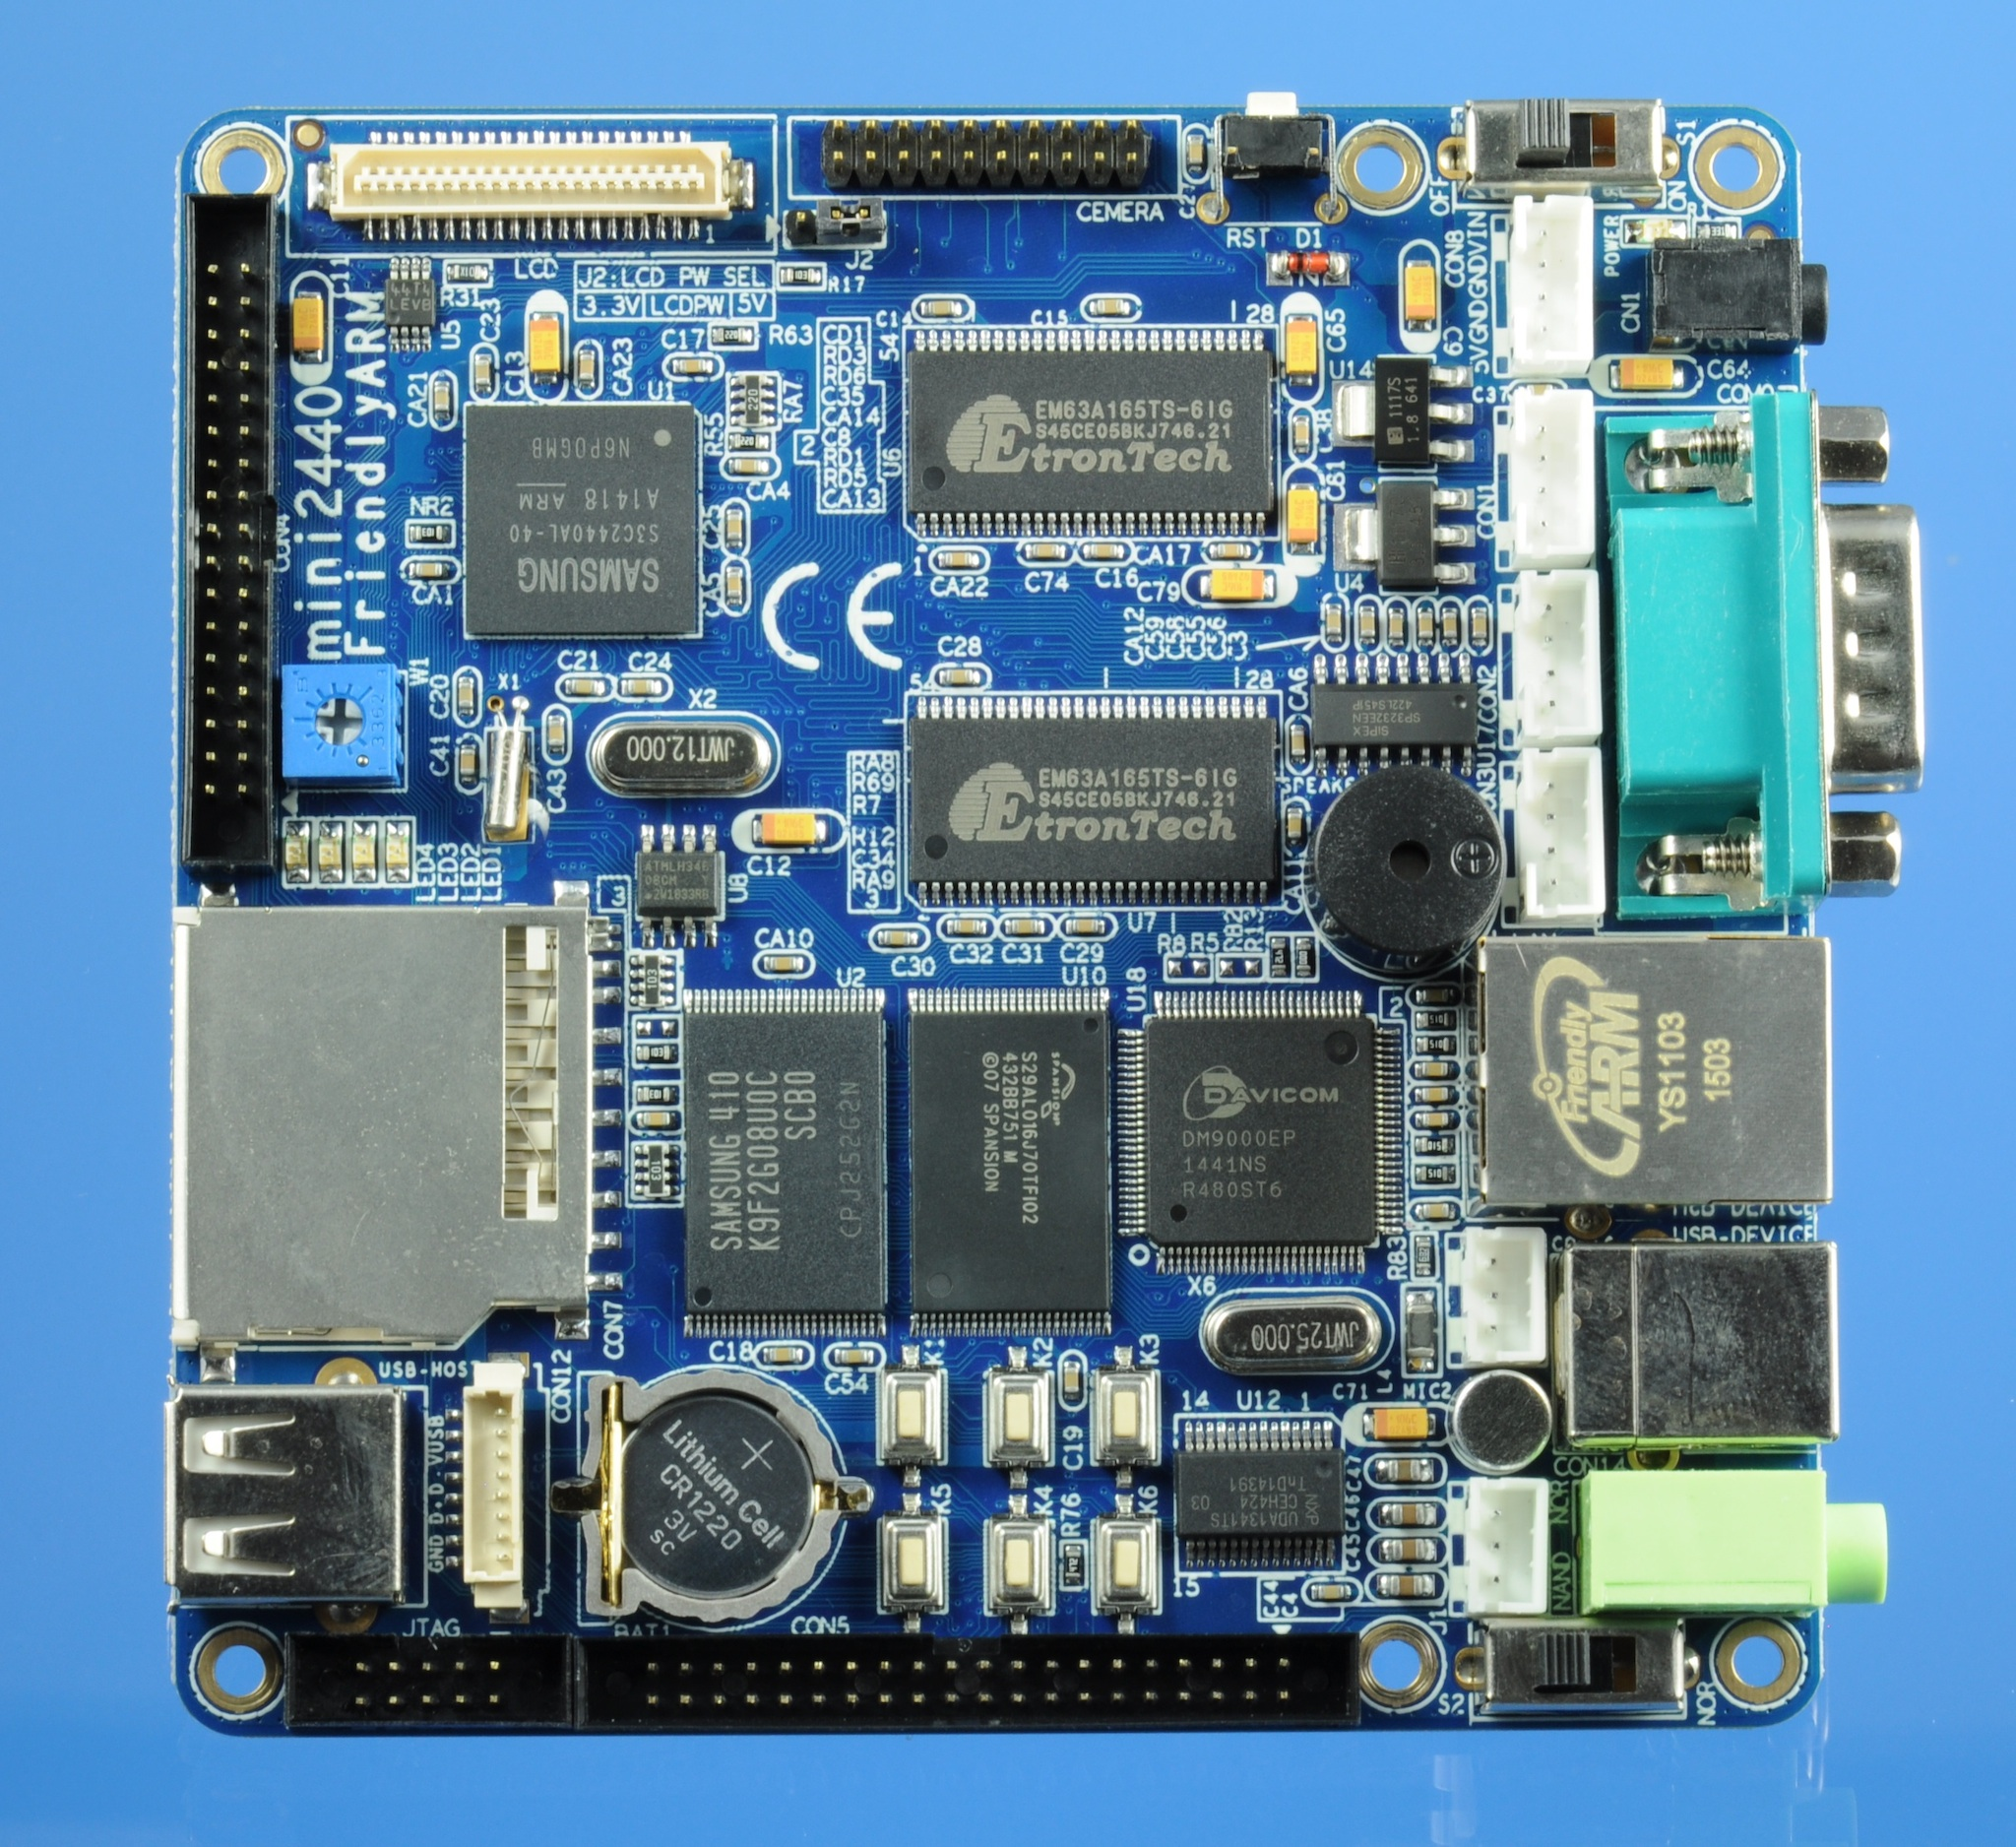 Name Nanopi Wiringpi Jtag Need Cables And Power Supply Dont Forget To Add The Accessories Kit 595 Ac2440